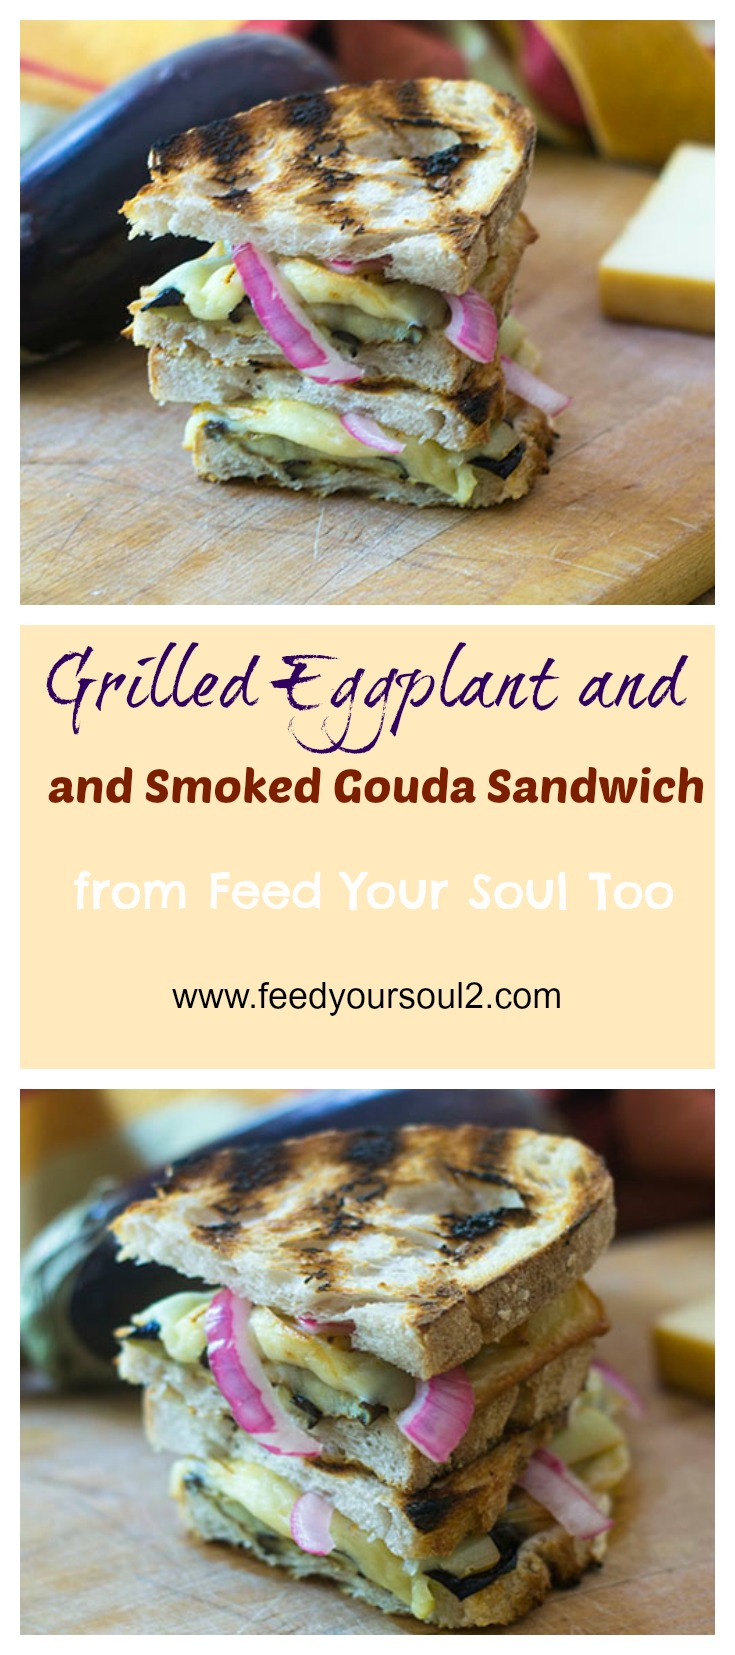 Grilled Eggplant and Smoked Gouda Sandwich #lunch #sandwich #grilled #vegetarian | feedyoursoul2.com